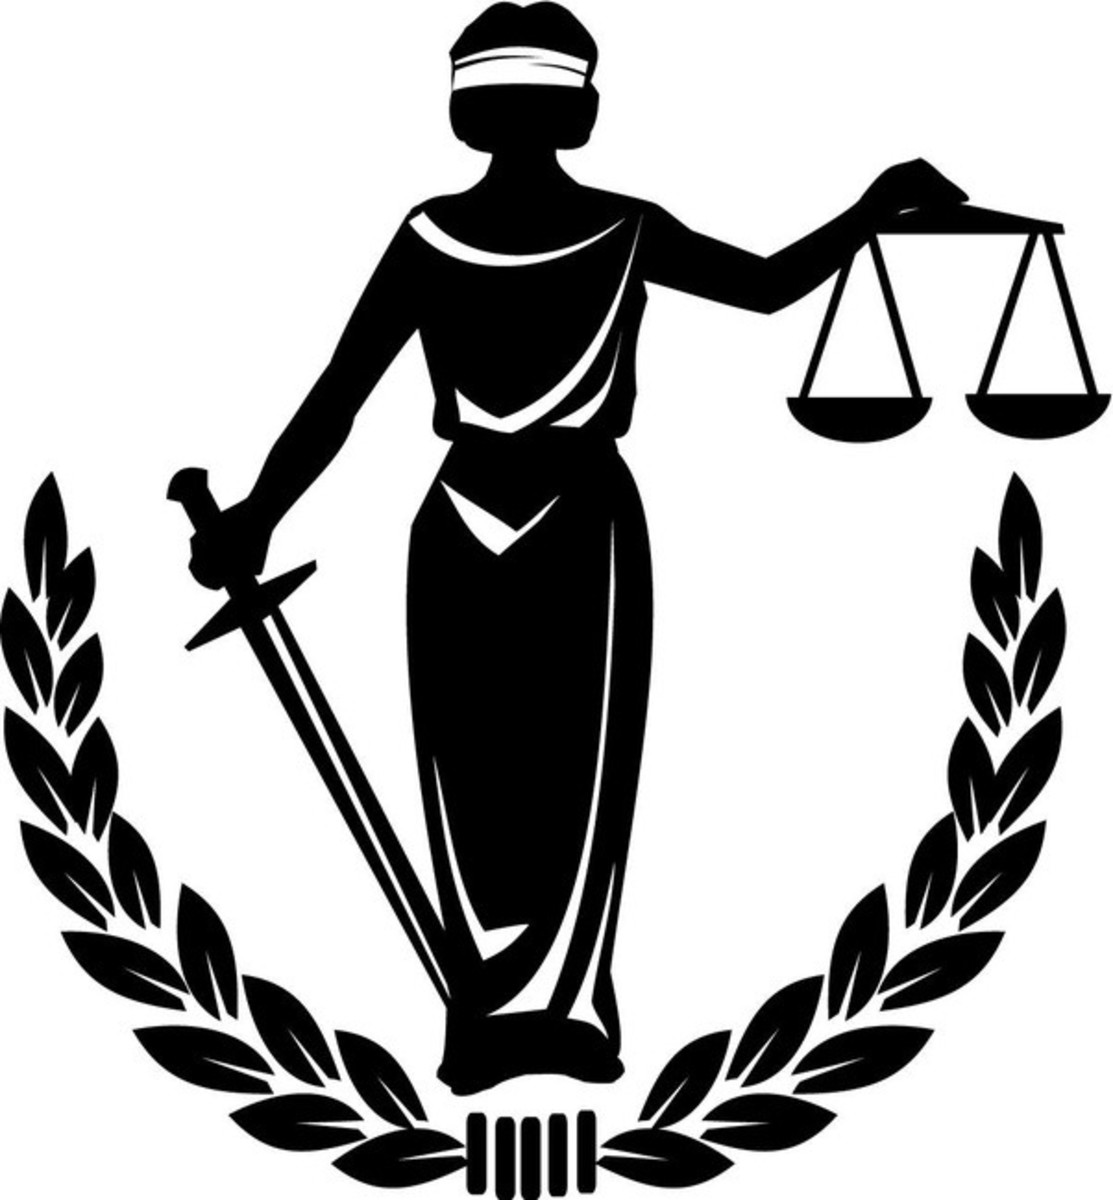 The symbol of justice: a blind person holding the scales of balance and the sword to provide equal justice.